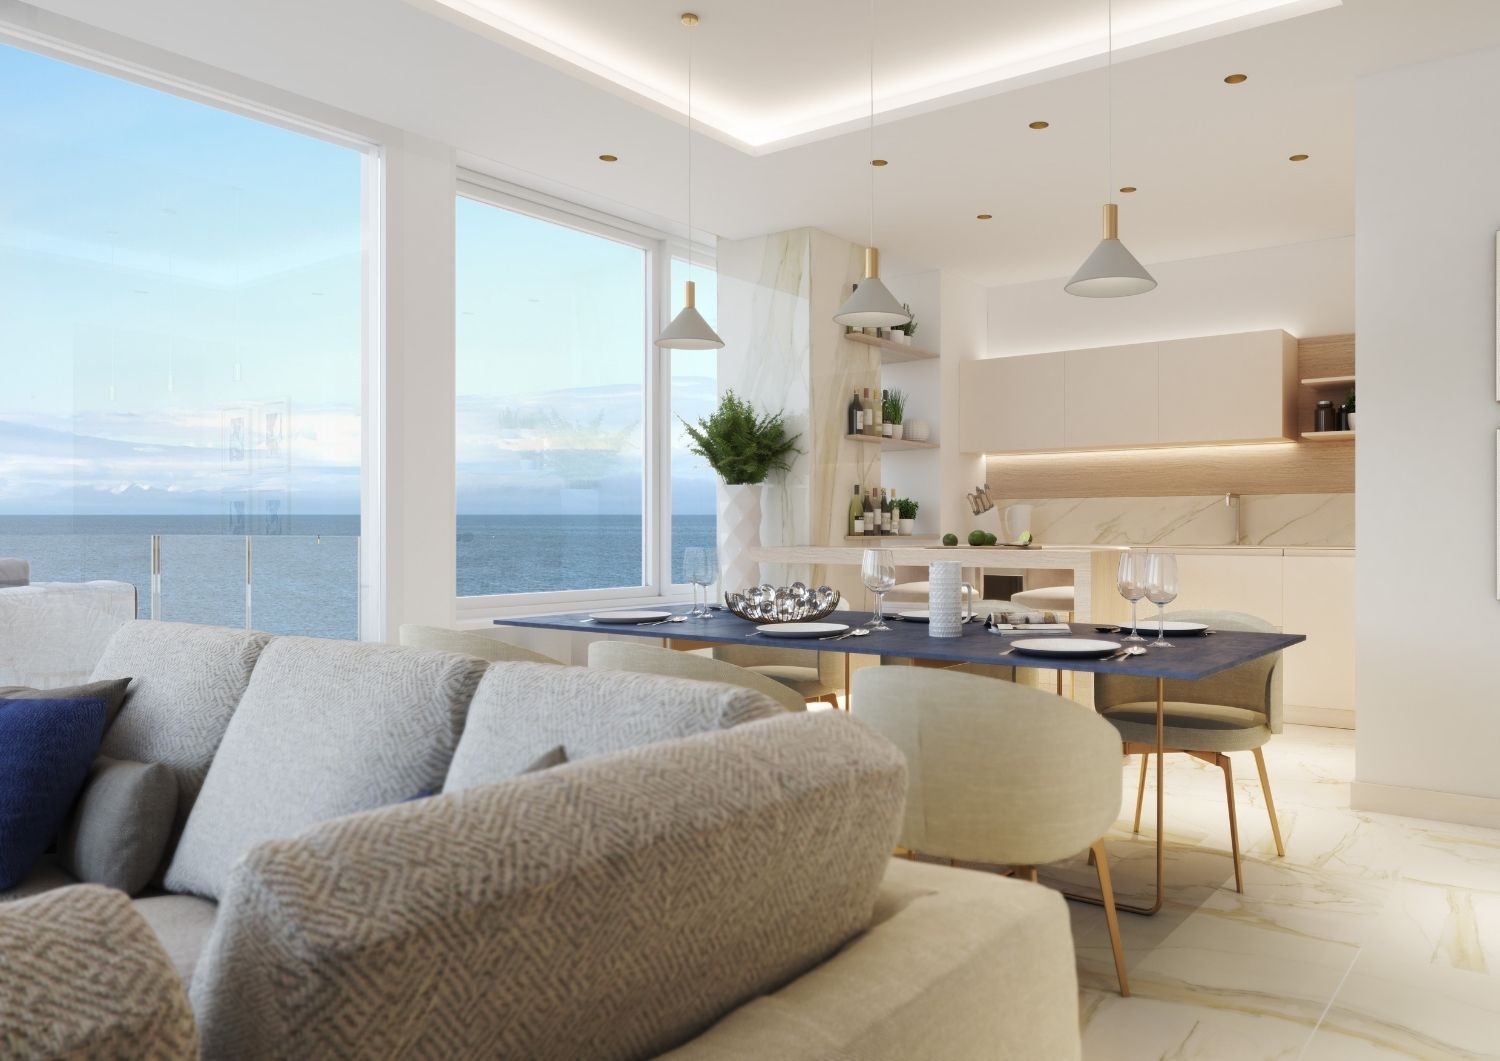 An elegant living room to join the amazing view on the Mediterranean Sea. Studio D73